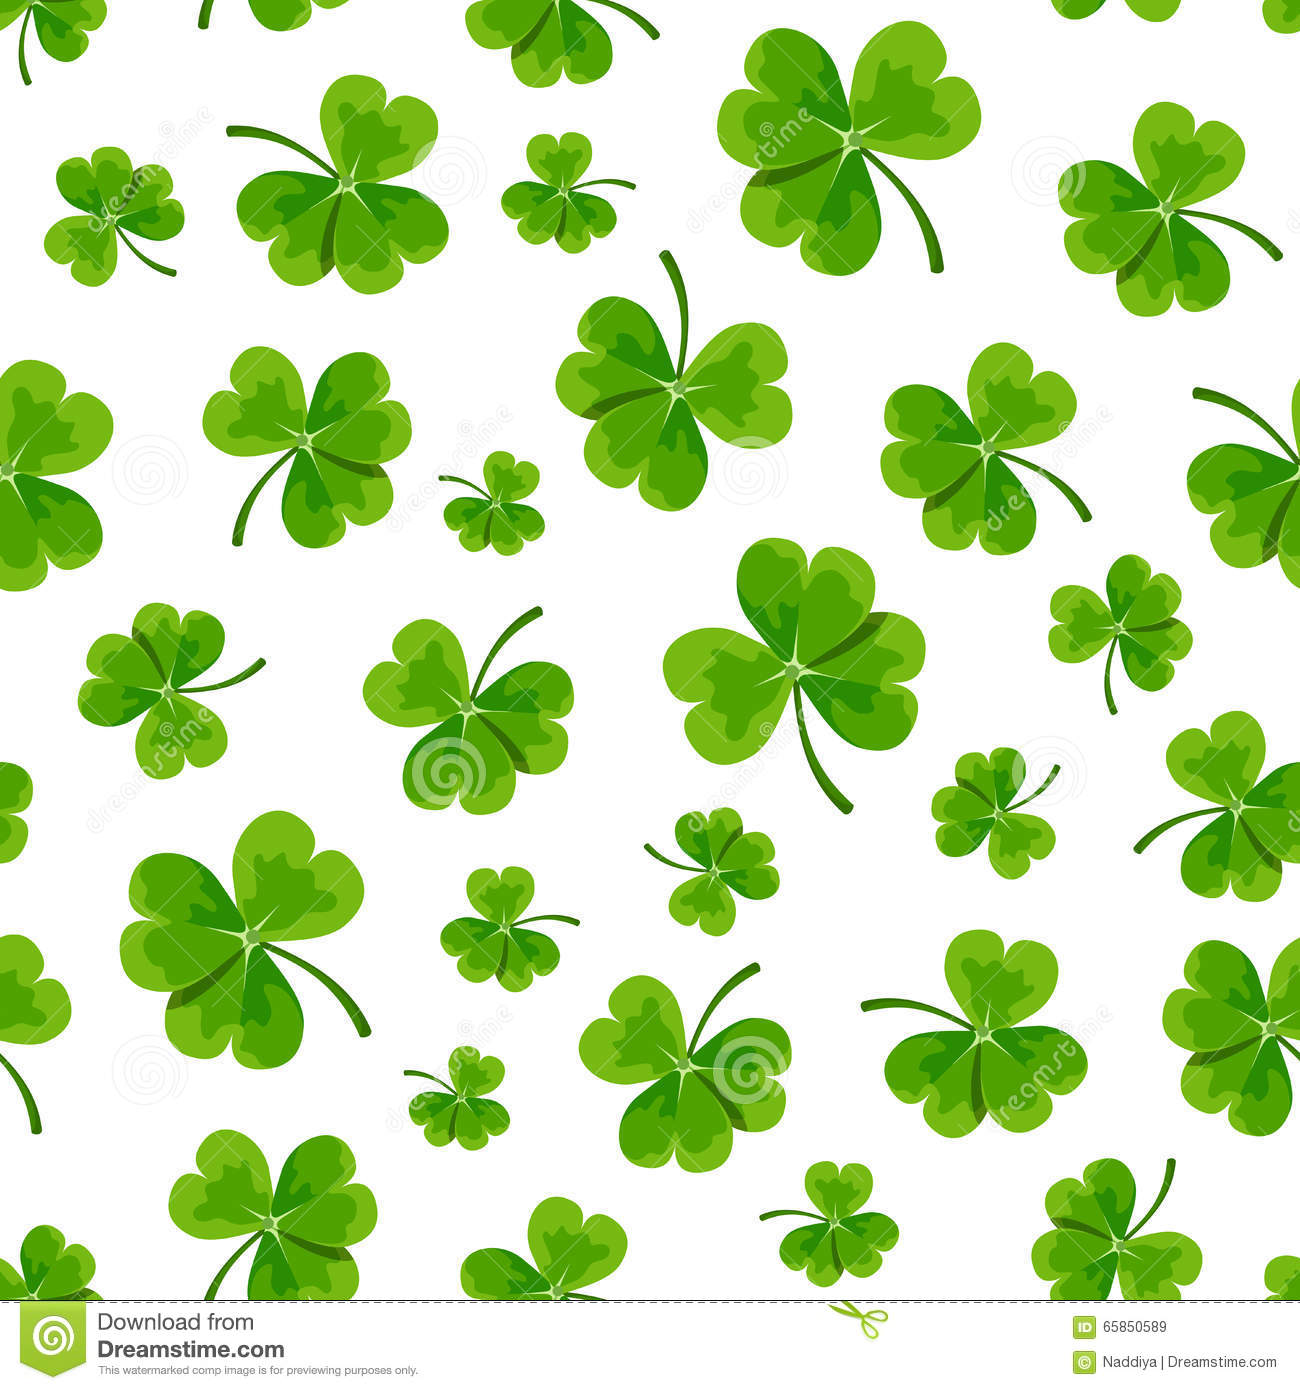 shamrock pattern wallpaper 1366x768 - photo #5